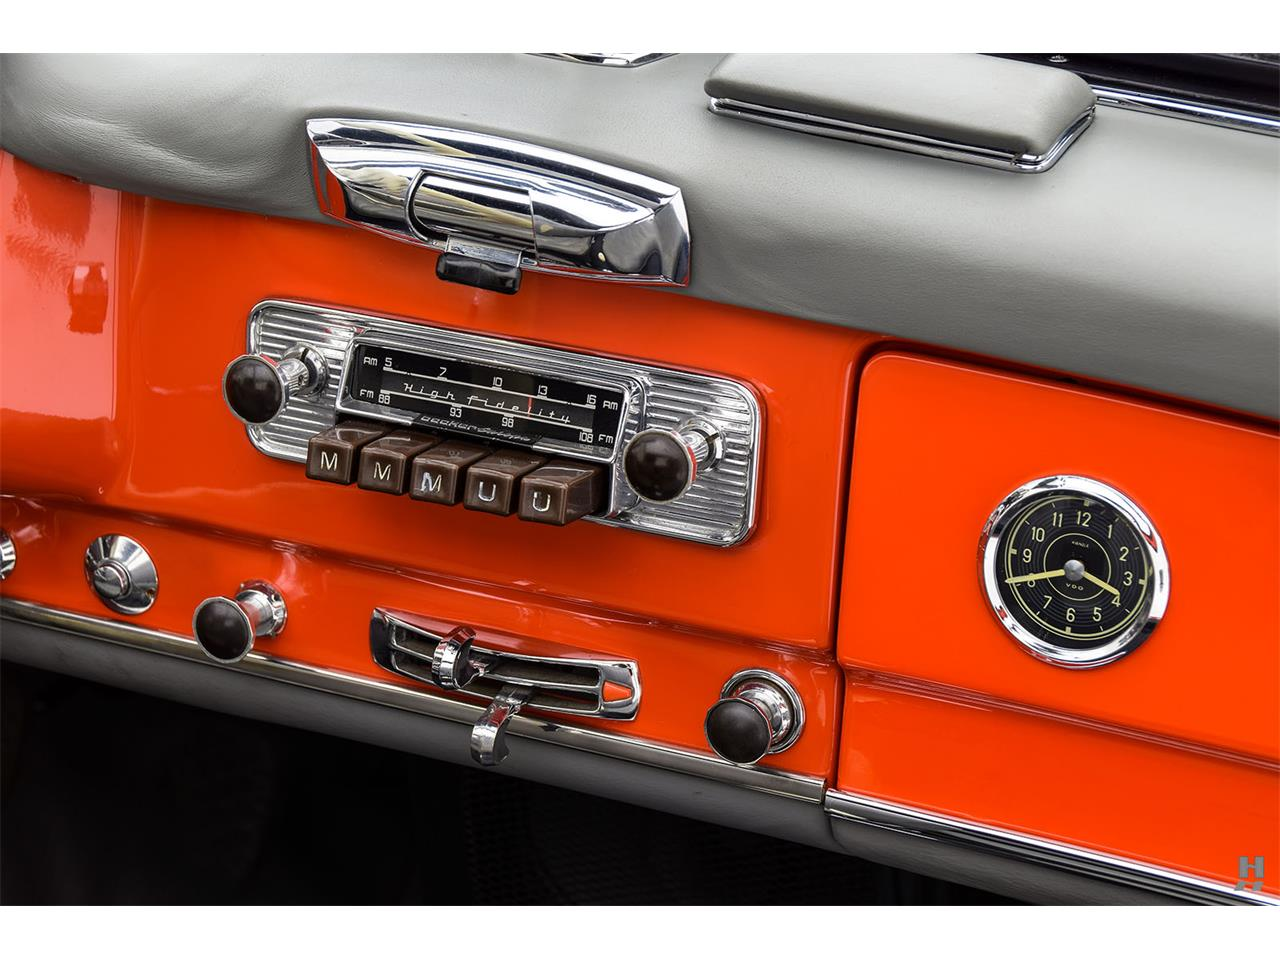 Large Picture of Classic 1957 Mercedes-Benz 190SL Offered by Hyman Ltd. Classic Cars - P2K7